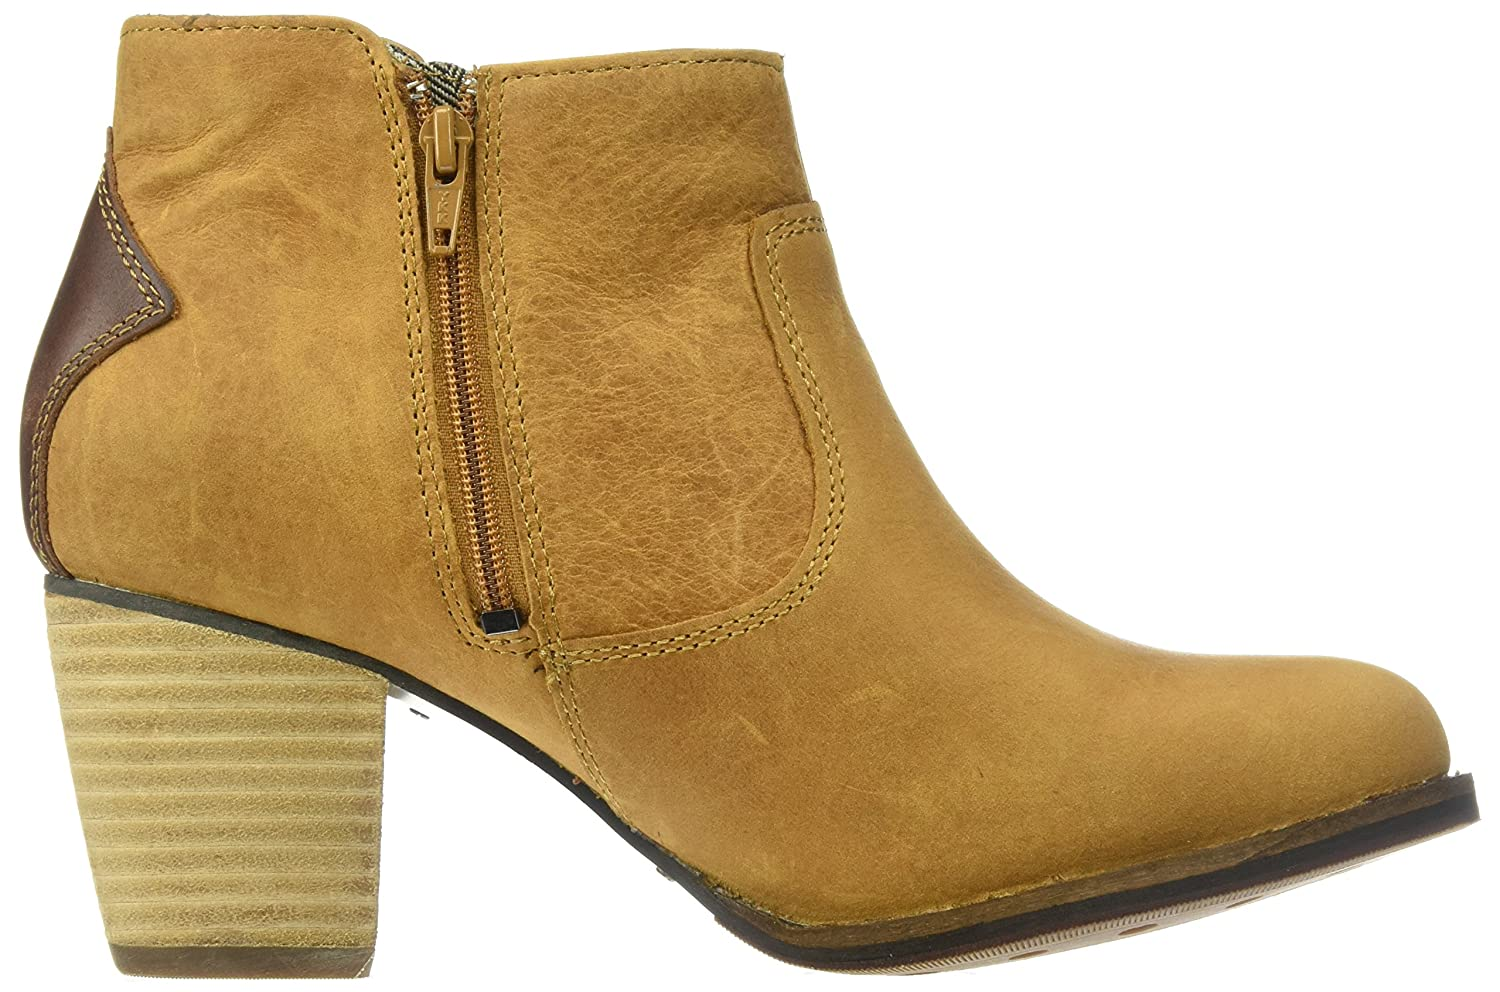 Amazon.com: Caterpillar Womens Trestle Waterproof Leather Bootie with Side Zip Abd Stacked Heel Ankle Boot: Shoes